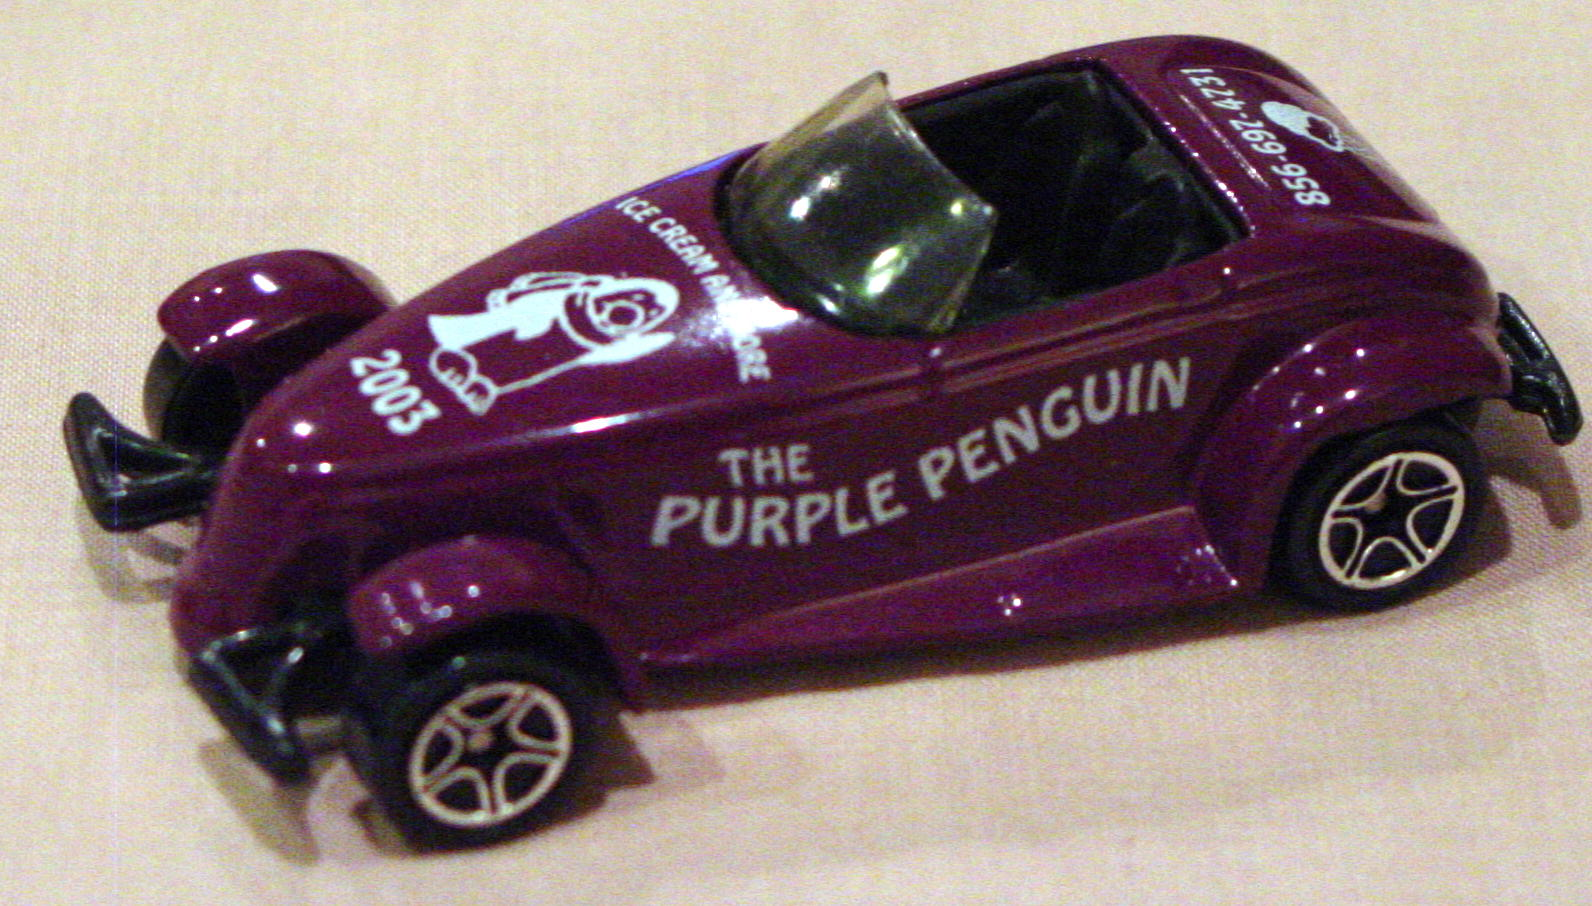 ASAP-CCI 34 G 66 - Prowler Plum The Purple Penguin CCI